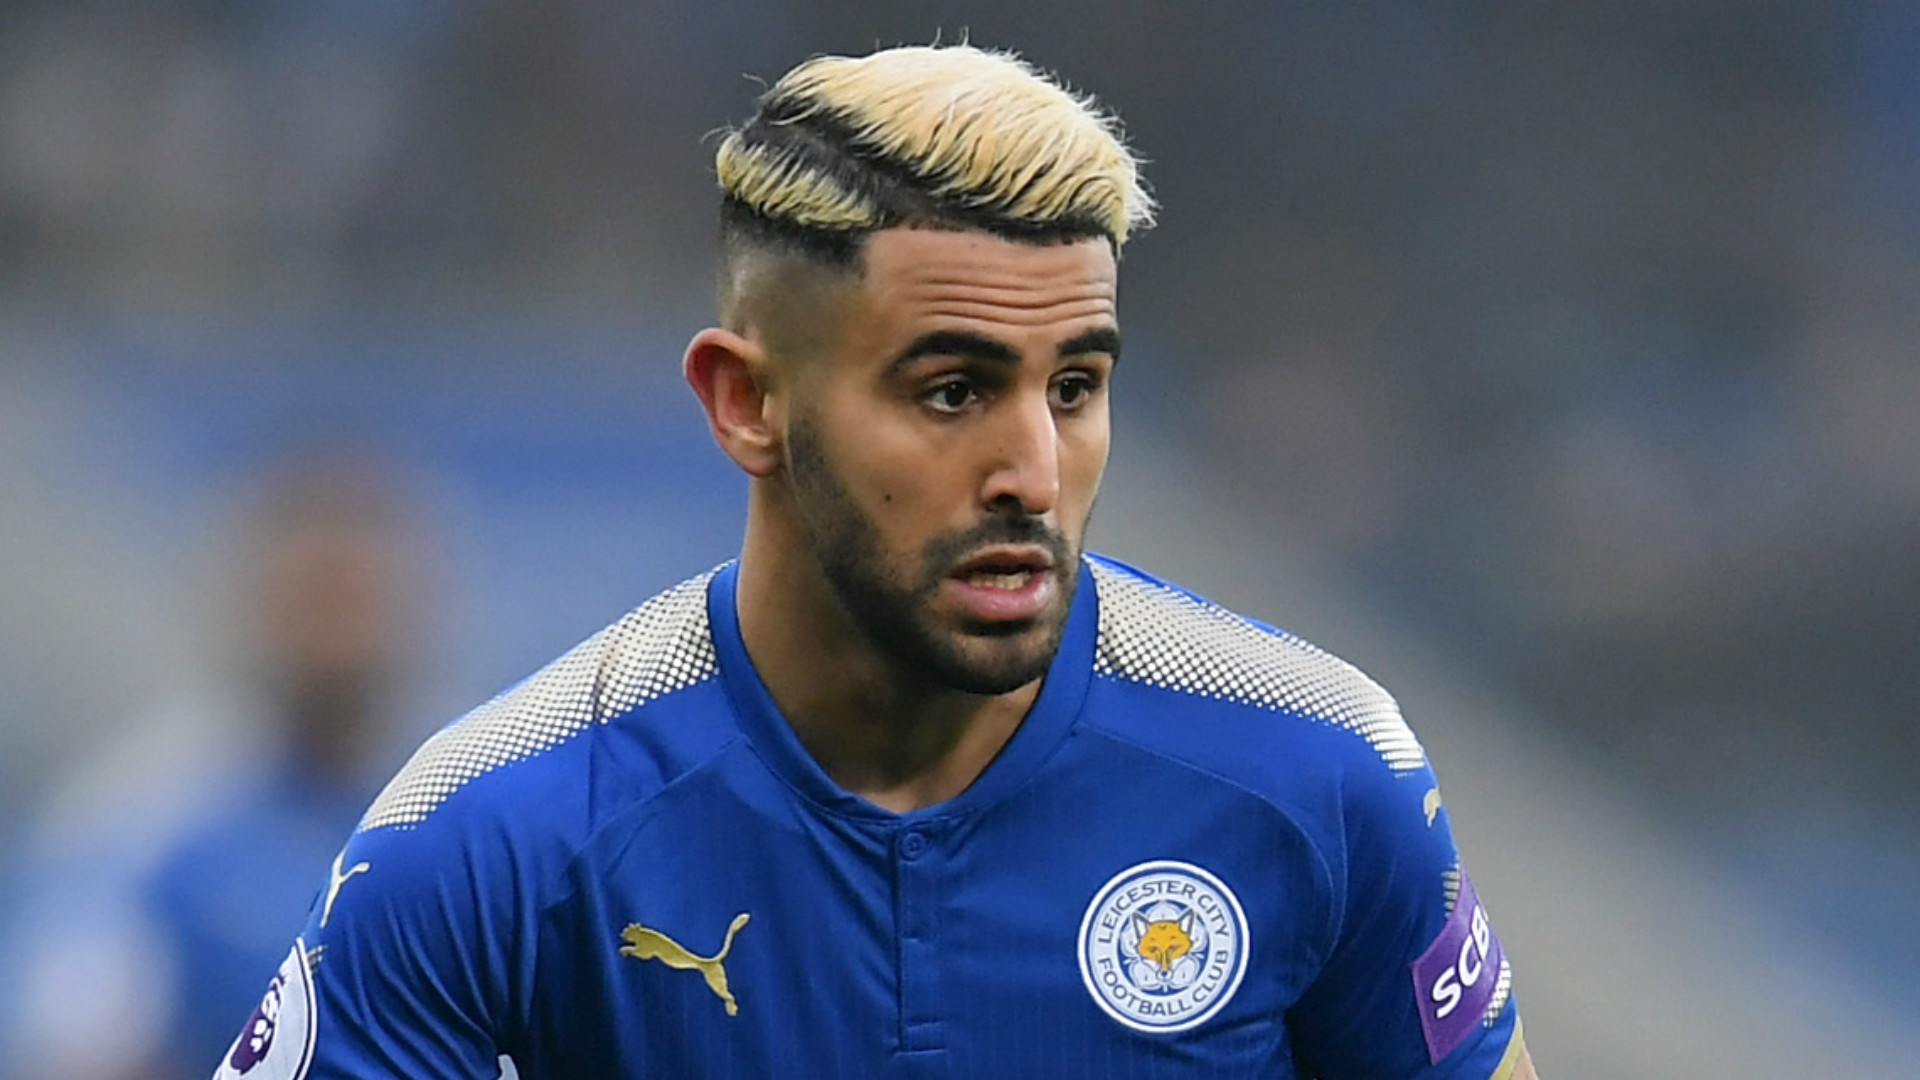 Riyad Mahrez shocks fans, announces retirement from football